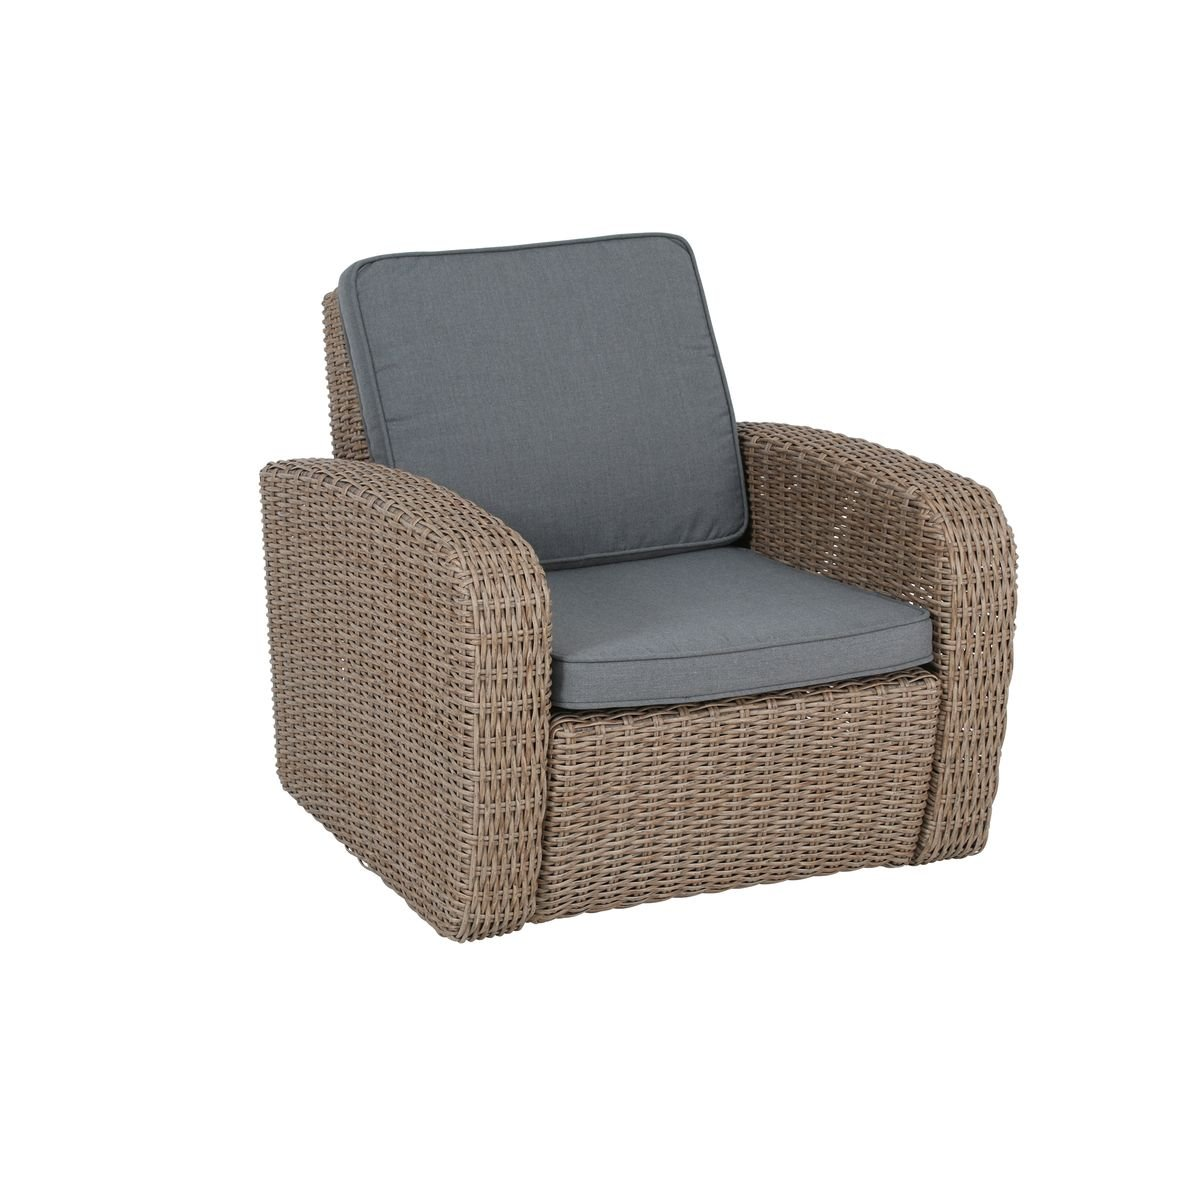 Lounge sessel terrasse  greemotion Rattansessel New York - Loungesessel mit Auflage in ...